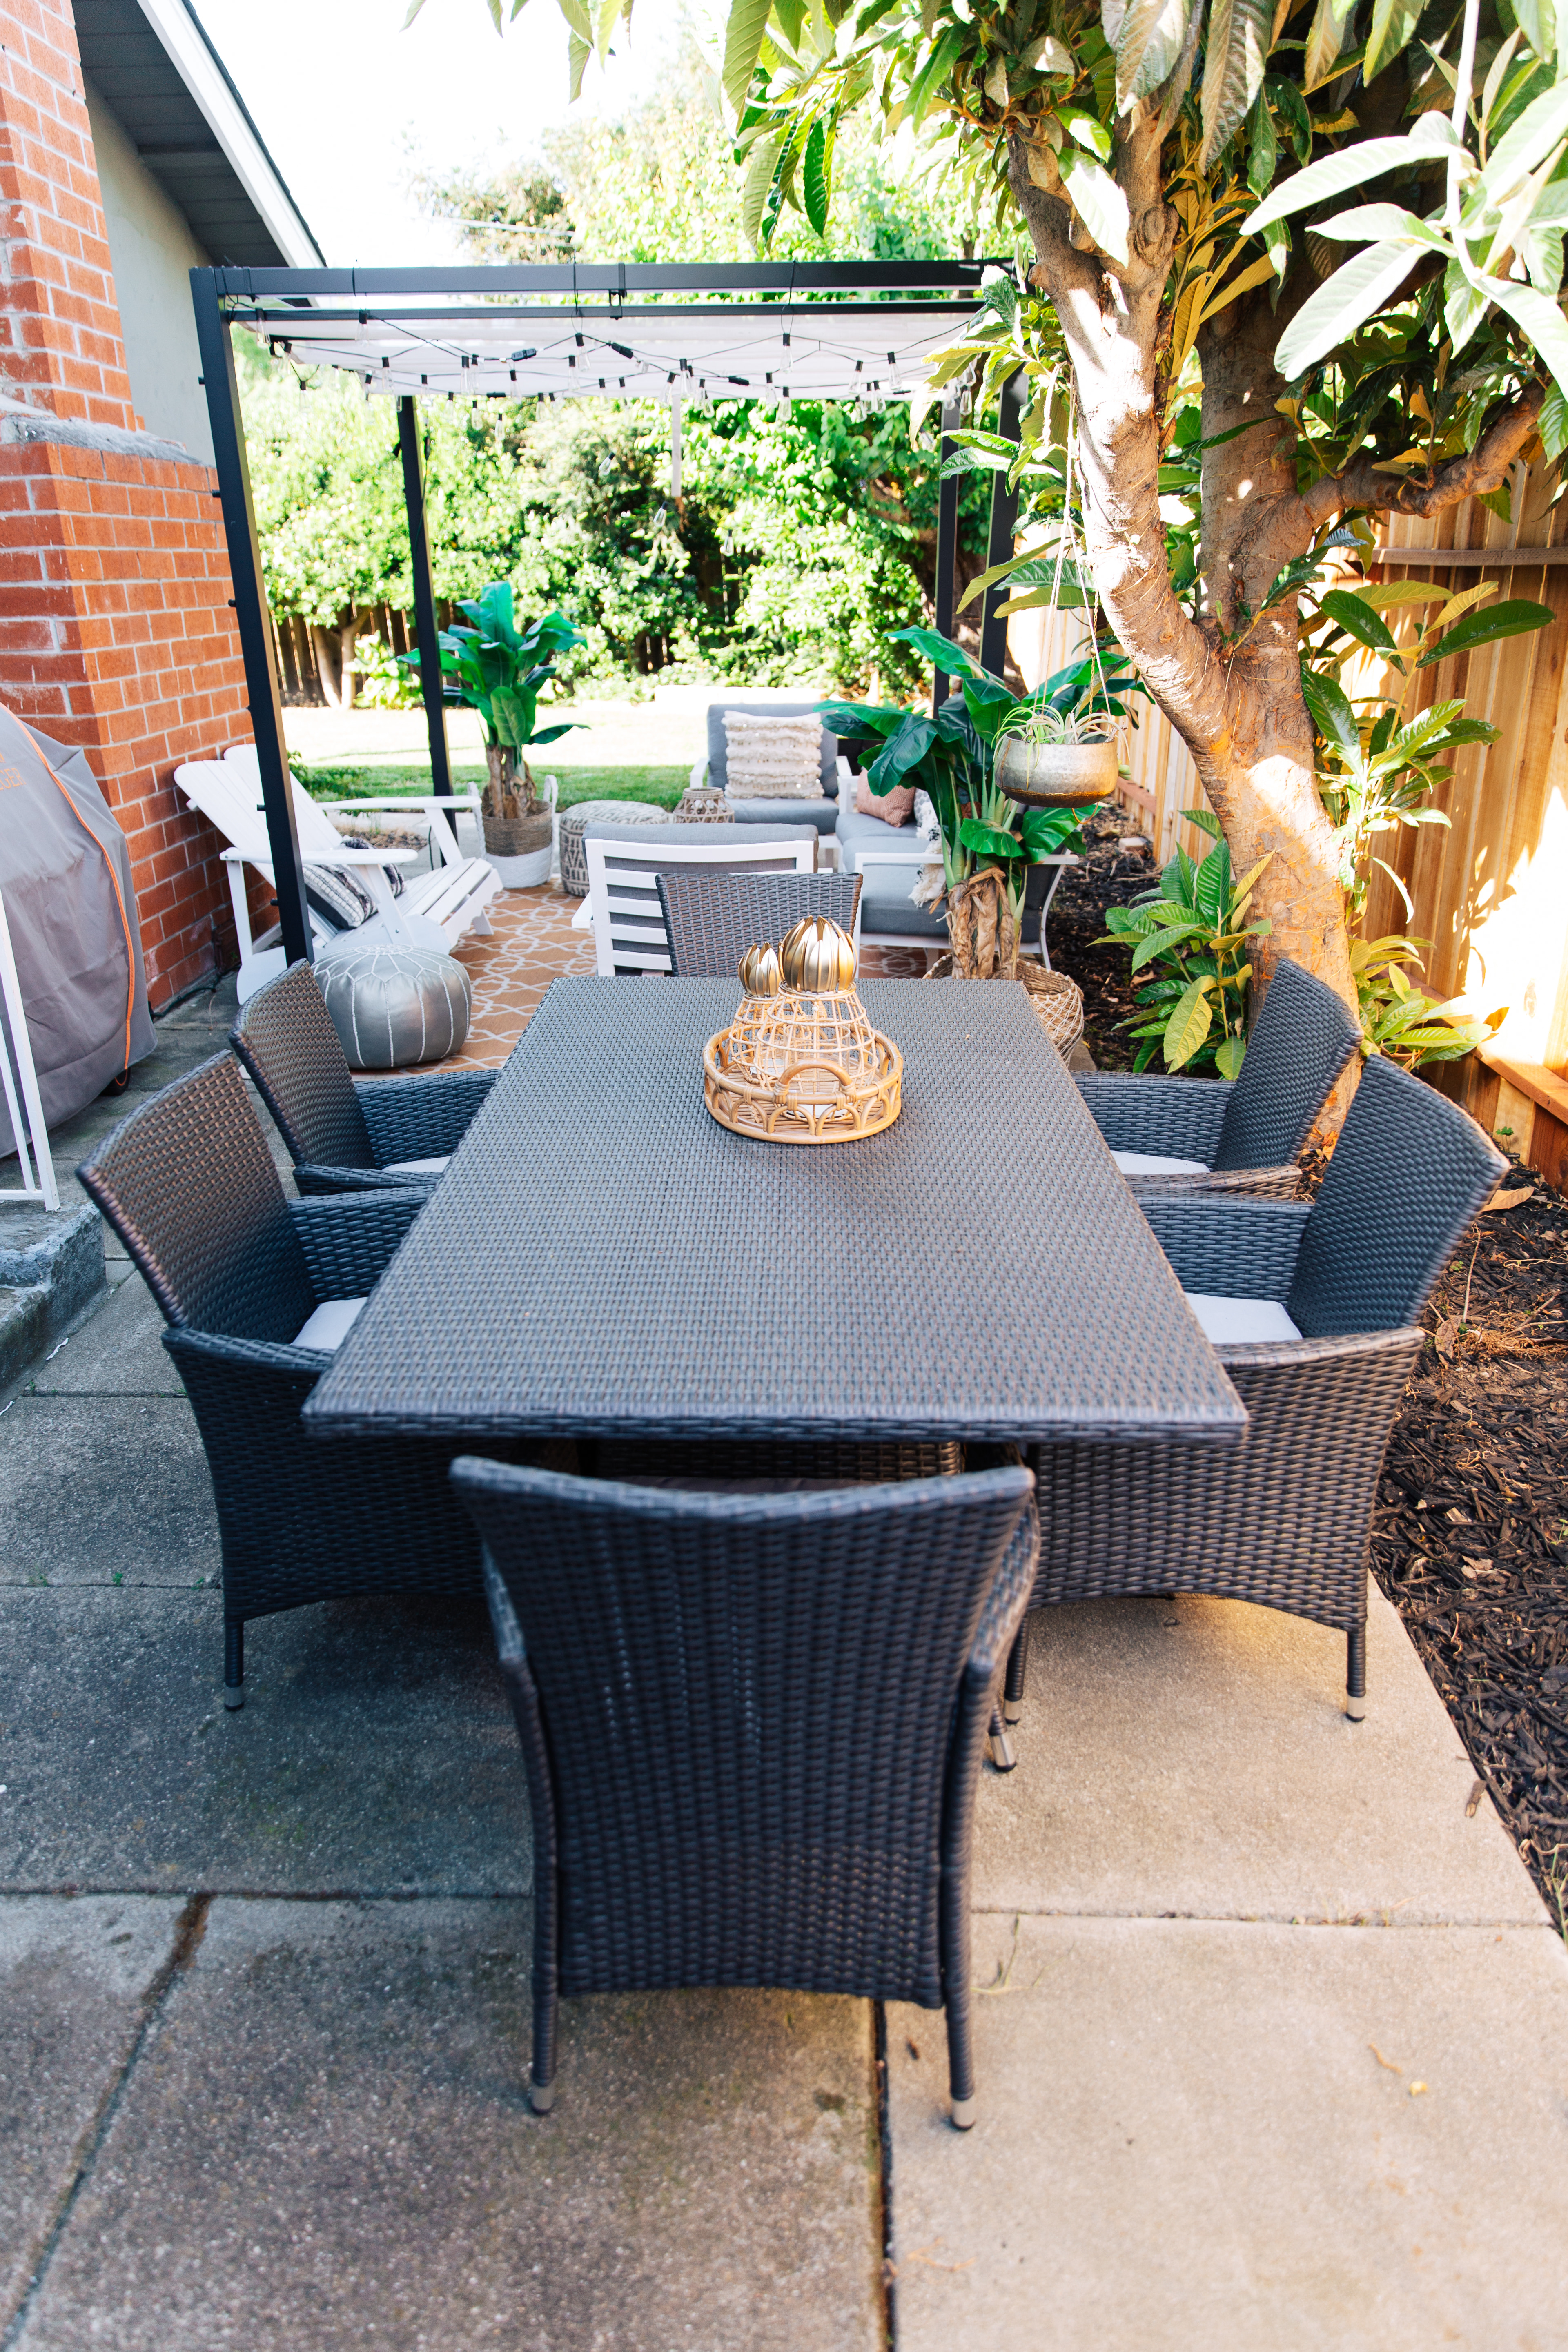 Outdoor Patio Ideas For The Summer With Yard Bird For The Love